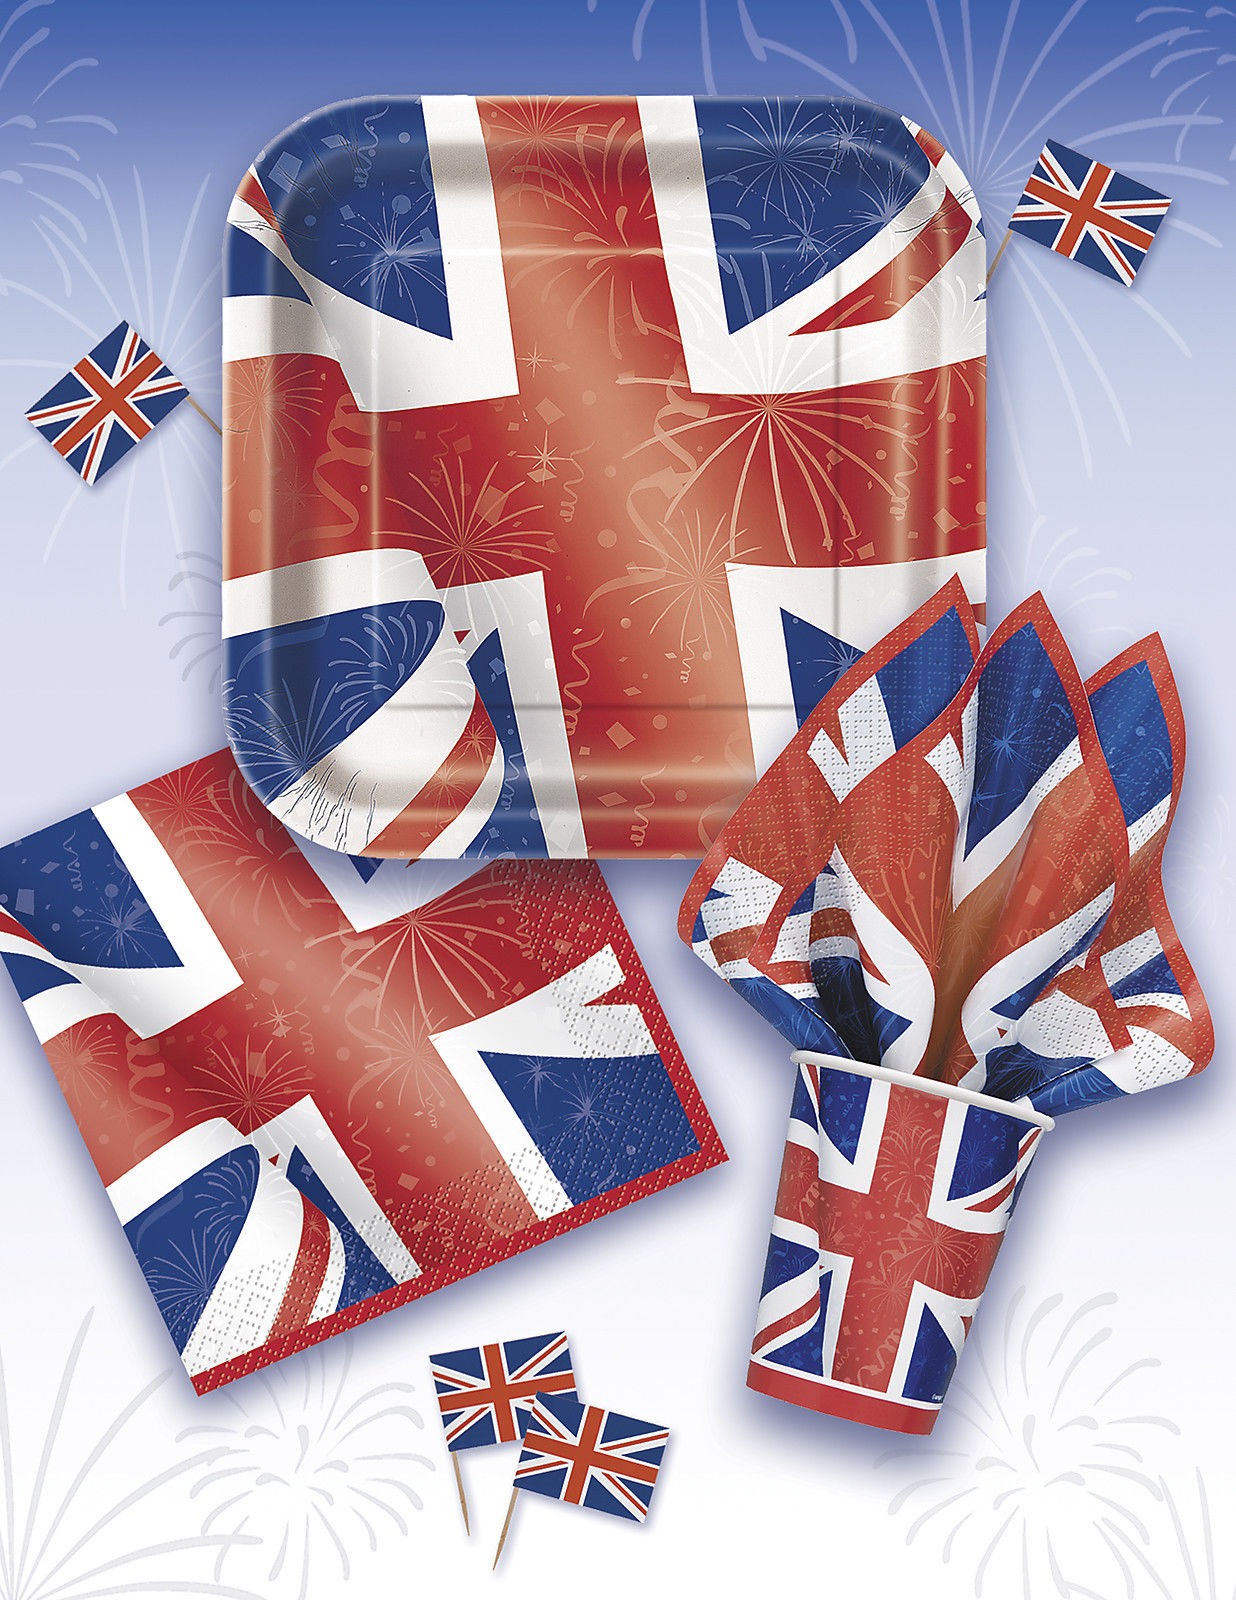 Best Of British (Union Jack) Partywaredecorationsballoongreat Britain